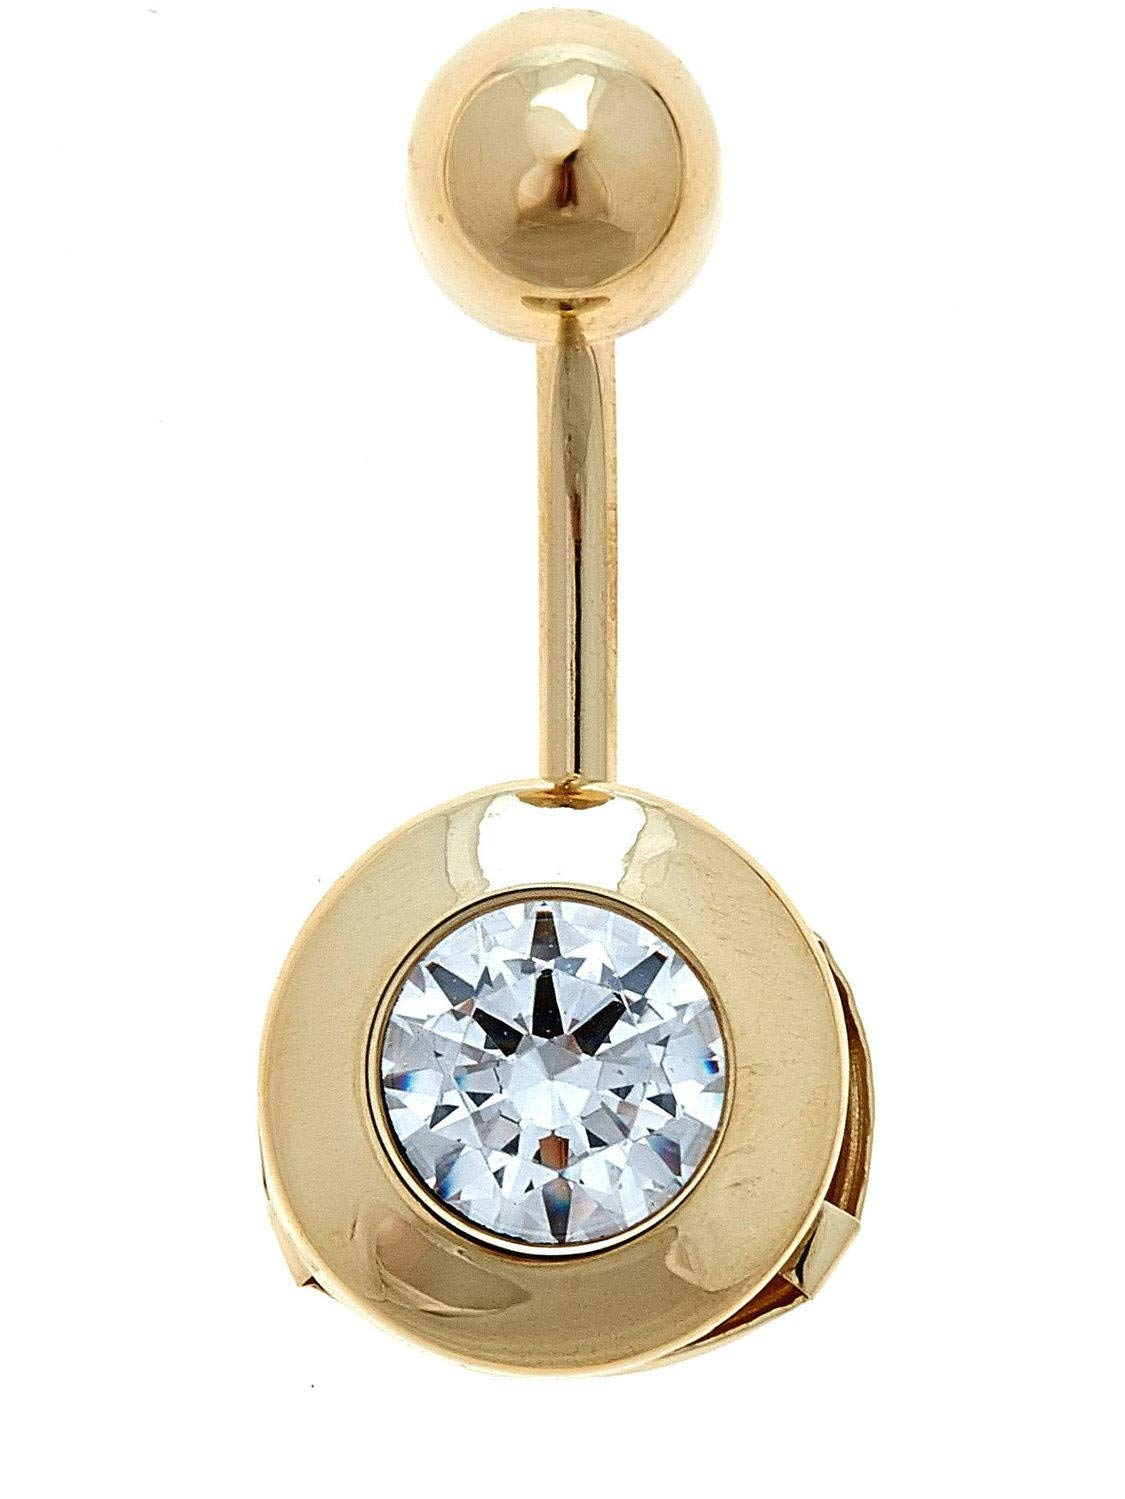 Zahaav Jewelry 10KT Solid Yellow Gold Round Belly Button Ring with CZ